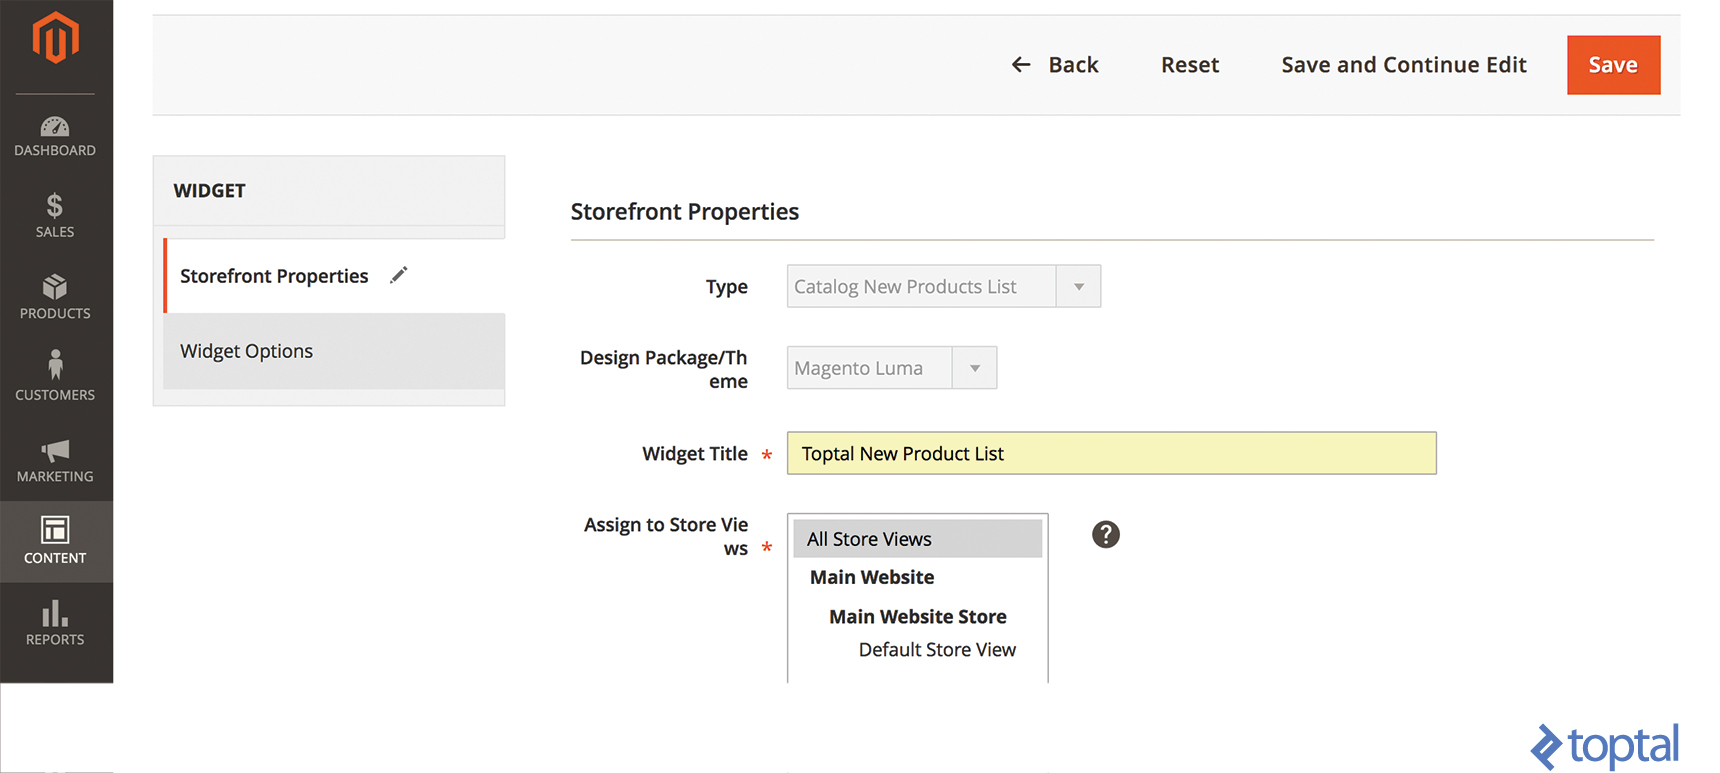 Image of the Magento Storefront Properties tab